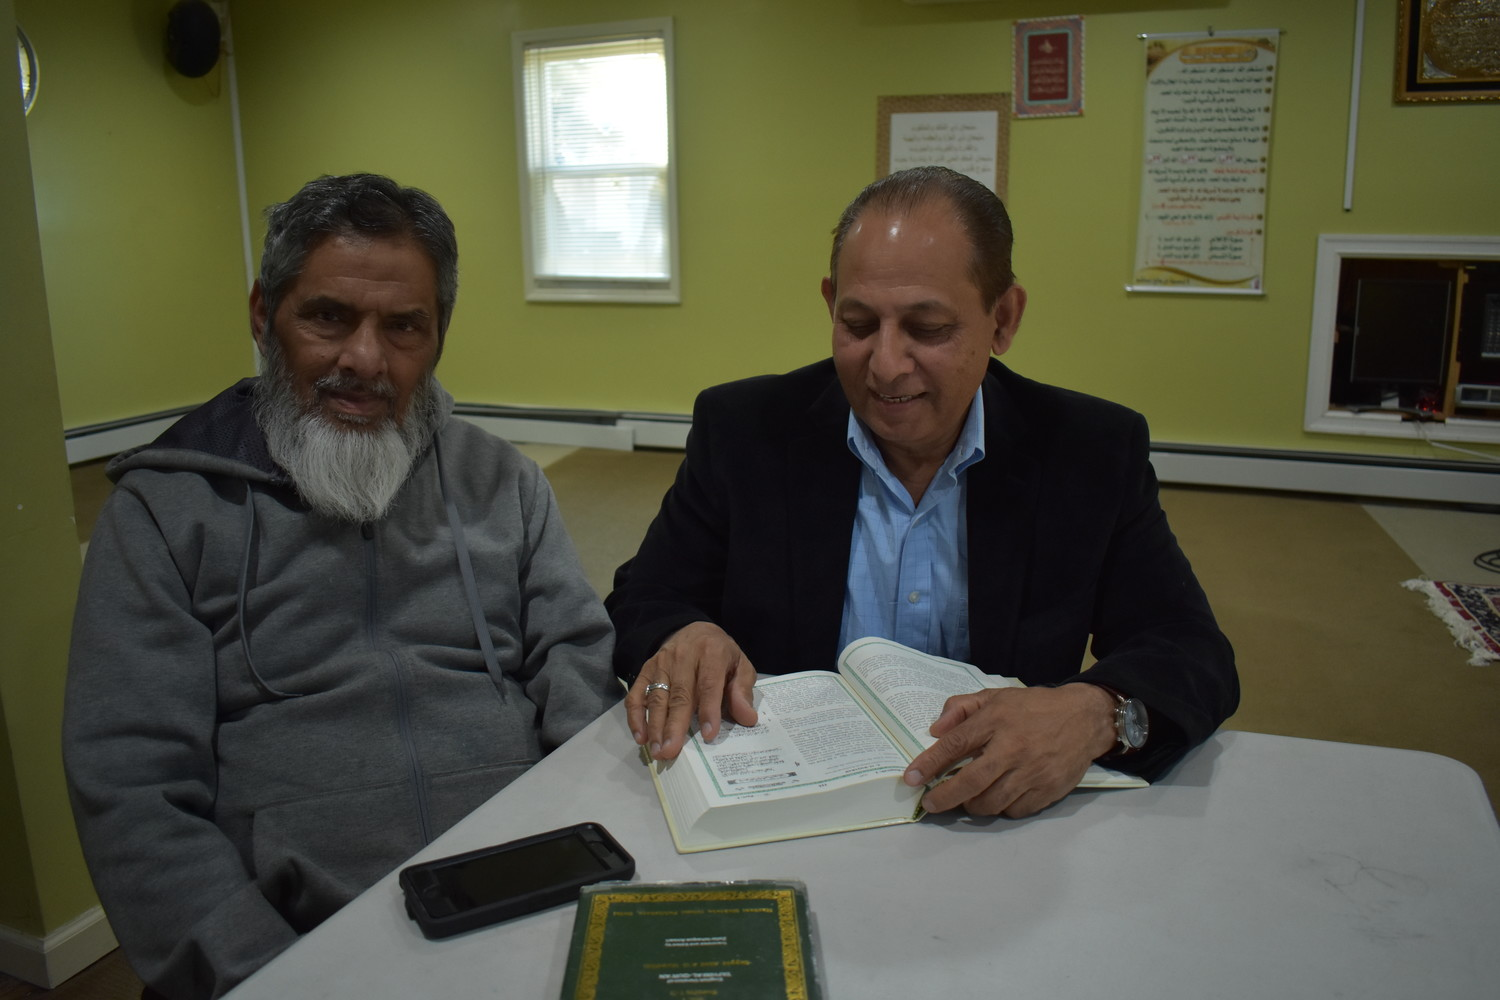 Islamic Center president, Tanvir Ahmad, right, and member Syed Sajid Husain read the Quran, a daily part of observing Ramadan.